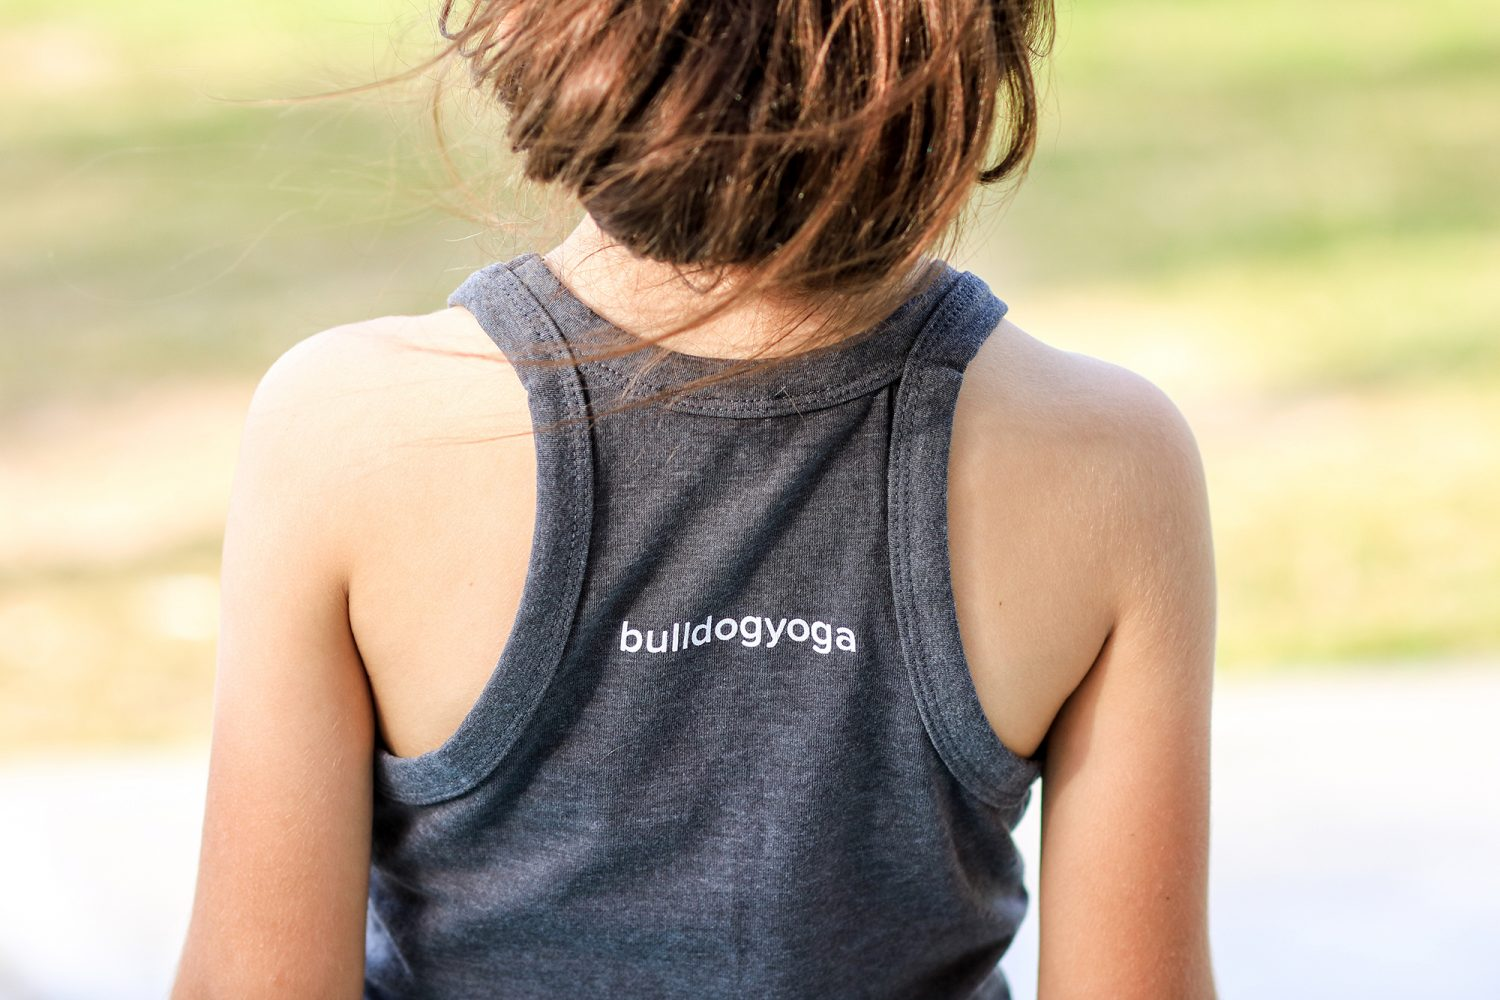 bulldog yoga, yoga, online, fitness, working out, workout, online classes, streaming yoga, online yoga, family fitness, 2019